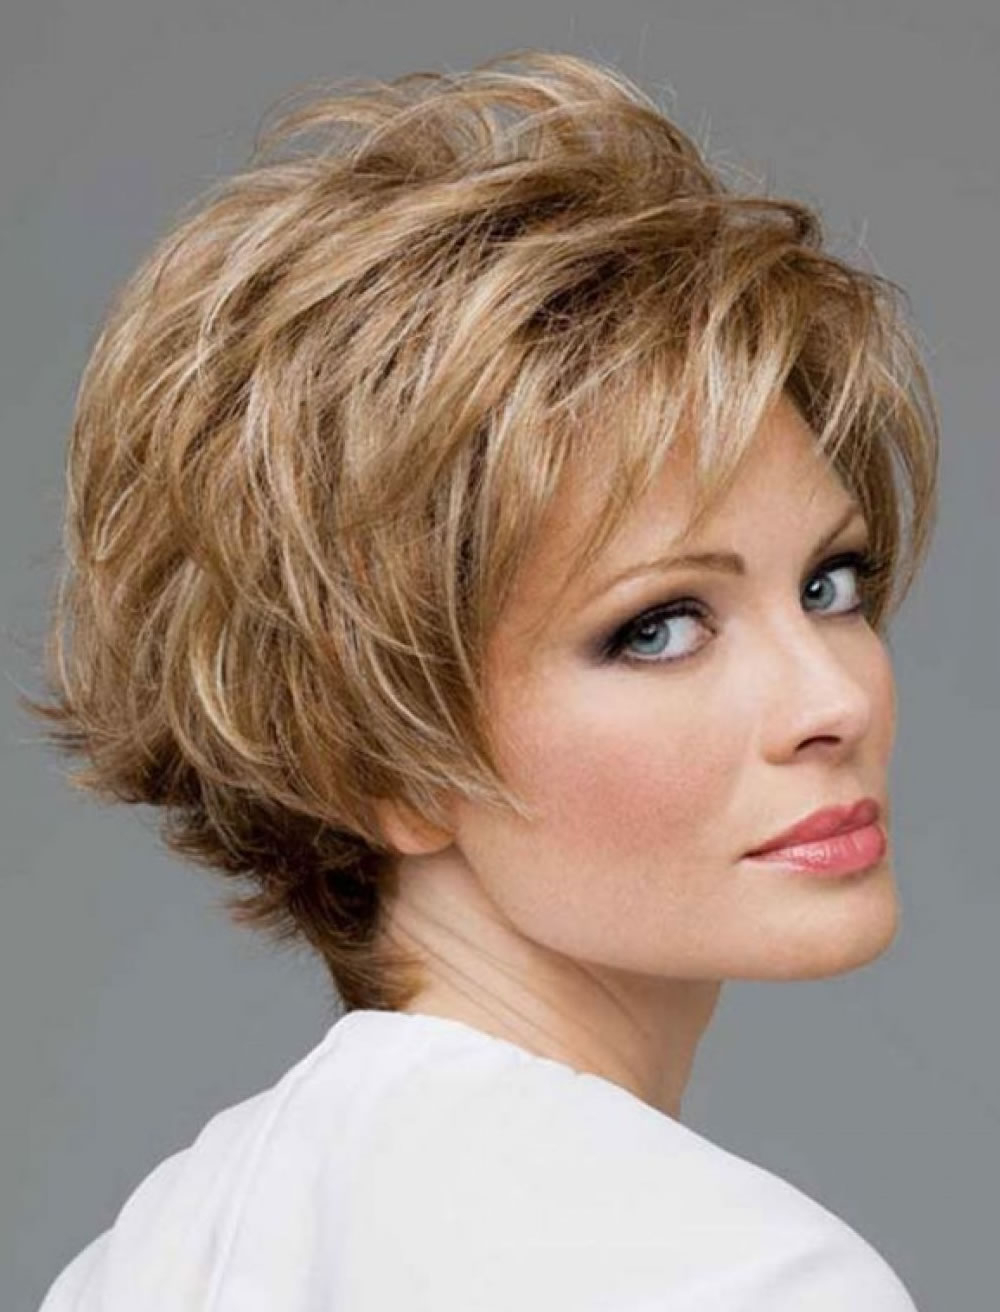 Dashing Short Haircut For 2018 Women Over 40 To 60 – Hairstyles For Short Haircuts Over 40 (Gallery 6 of 25)